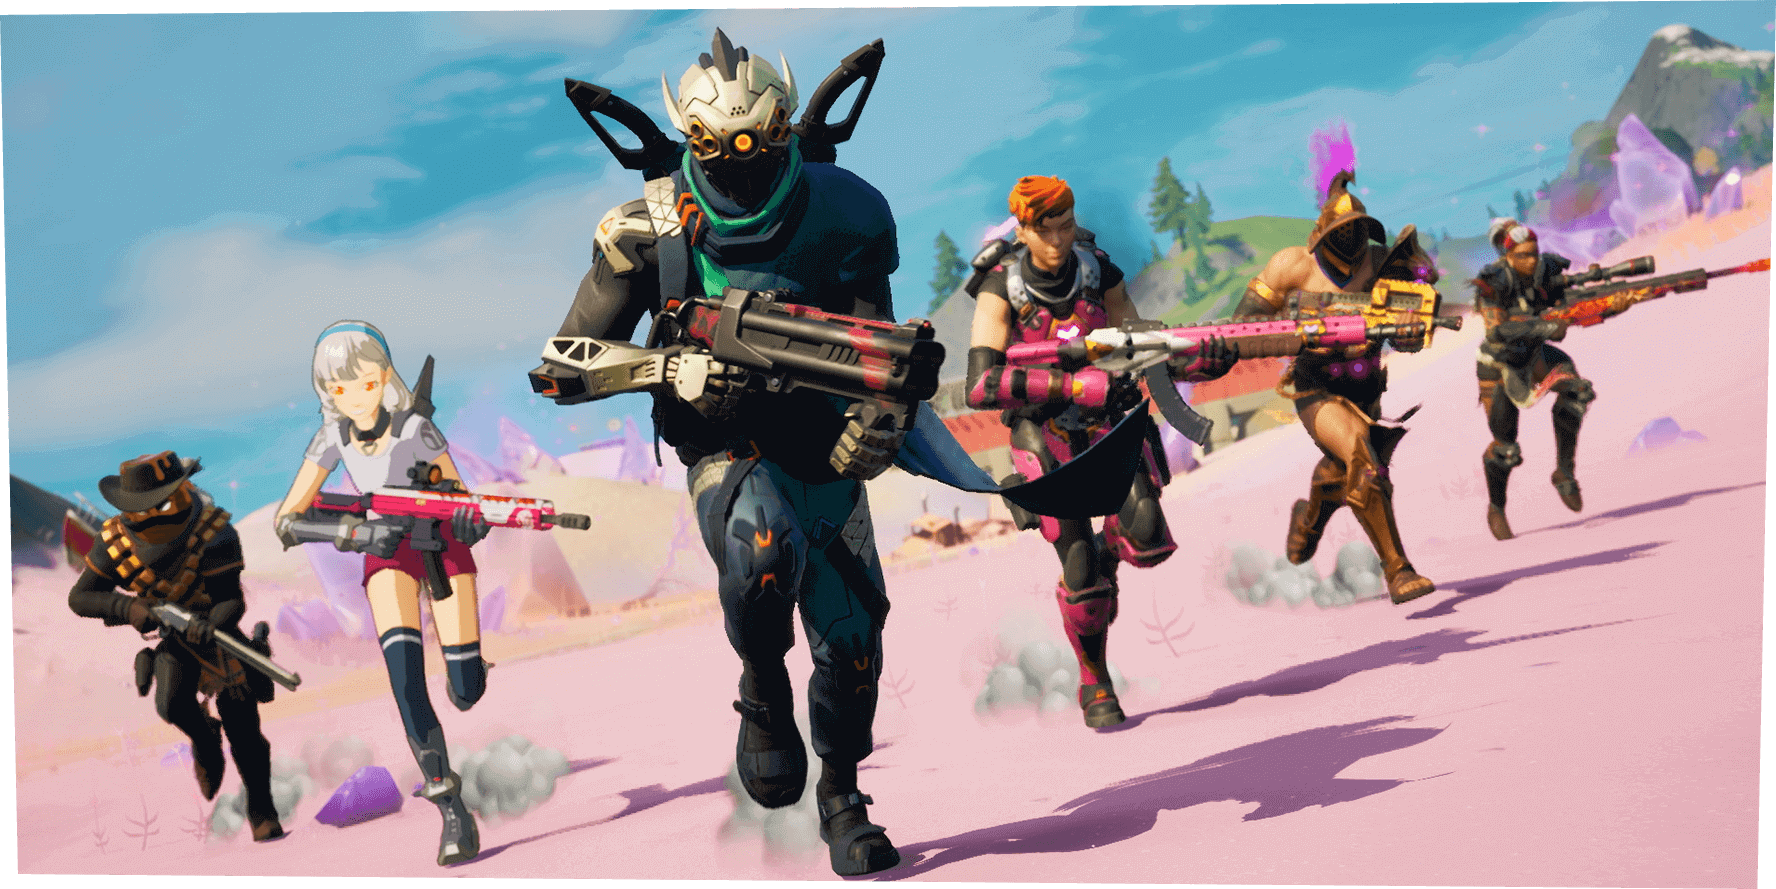 Check out the new Fortnite Season 5 Battle Pass: Skins, rewards & important information